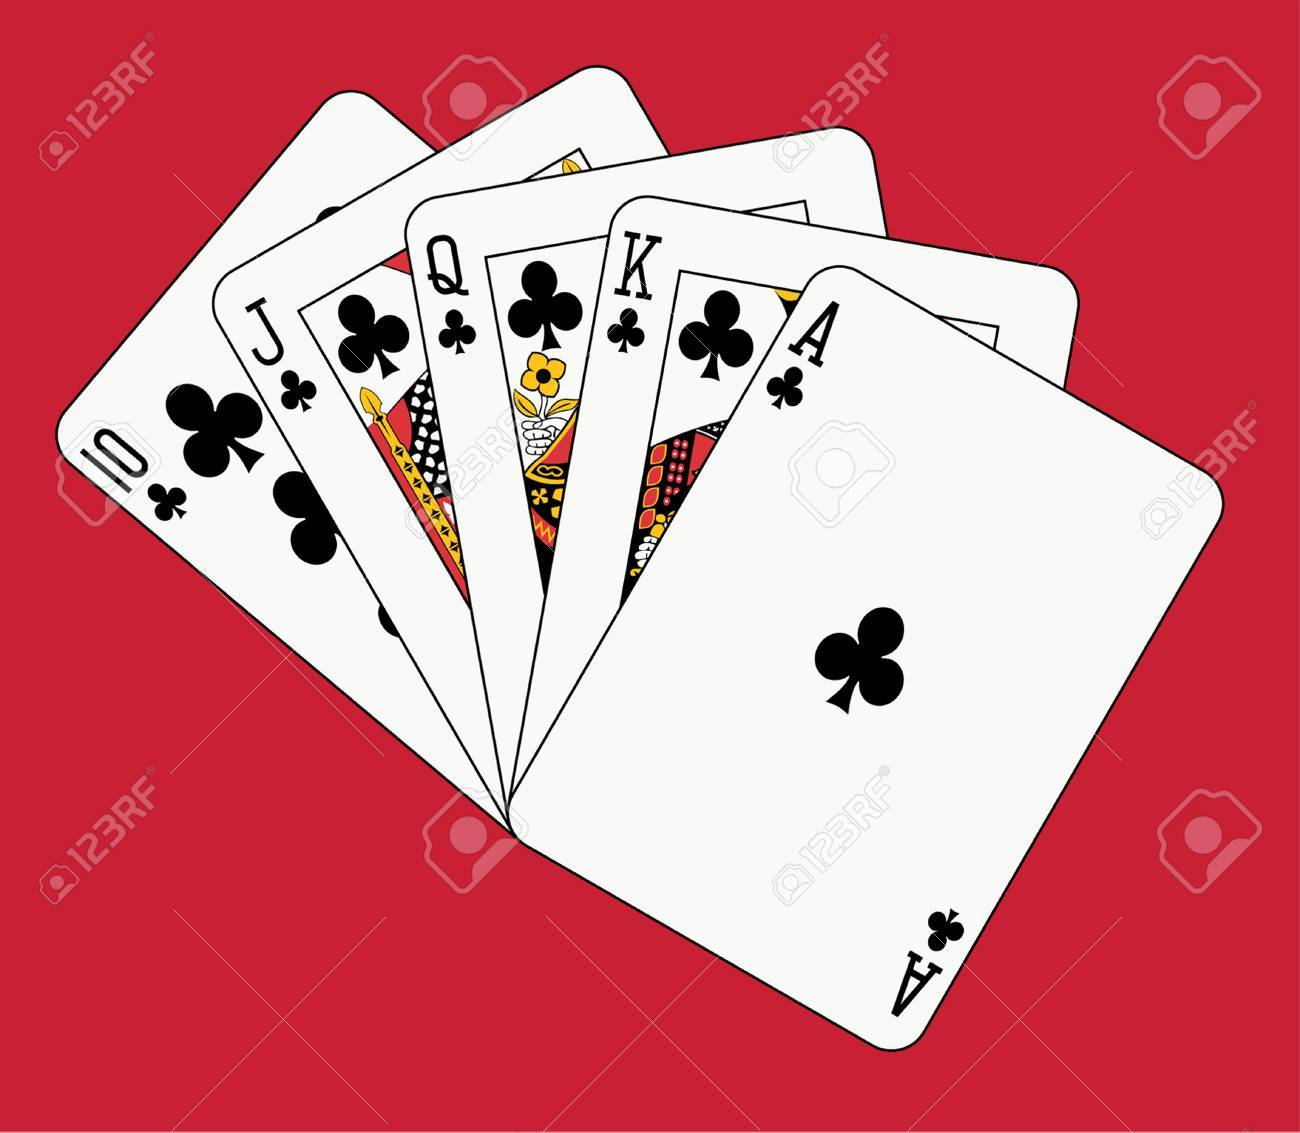 royal flush club on red backgriund Stock Vector - 4550066